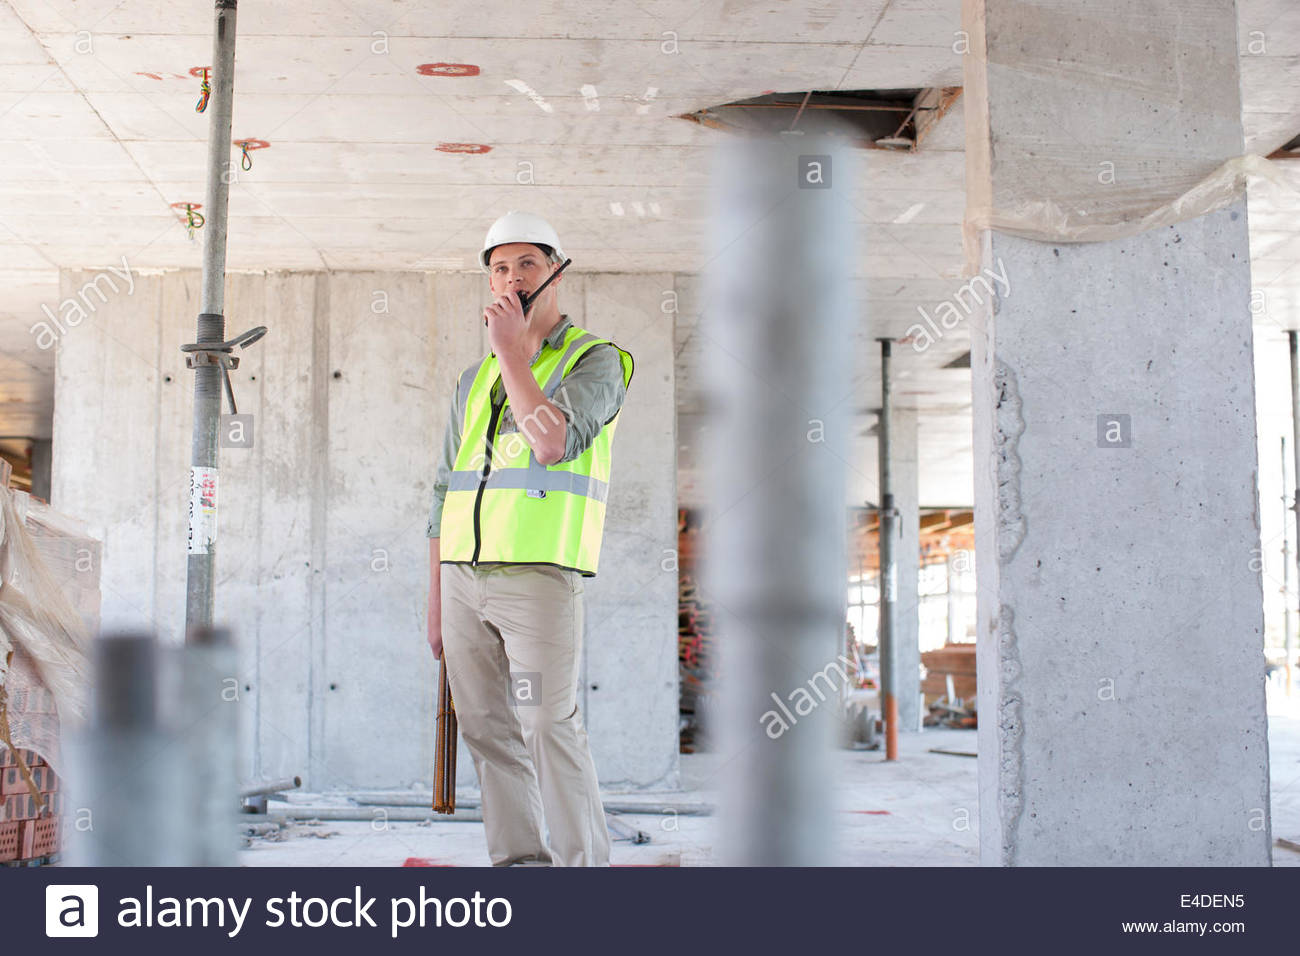 Construction worker talking on walkie talkie on construction site - Stock Image